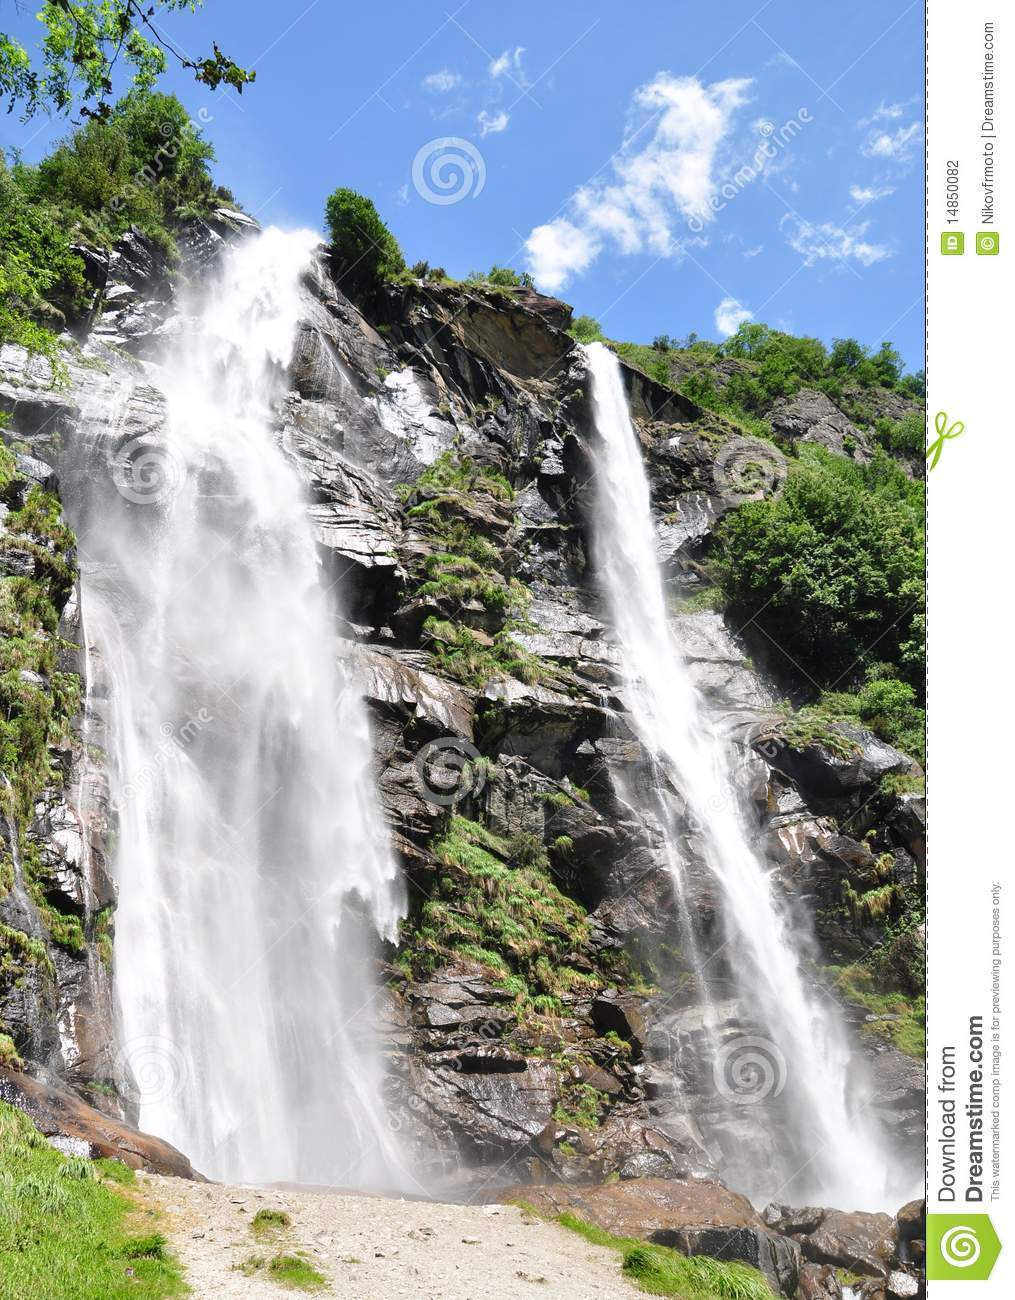 Waterfall in the alps